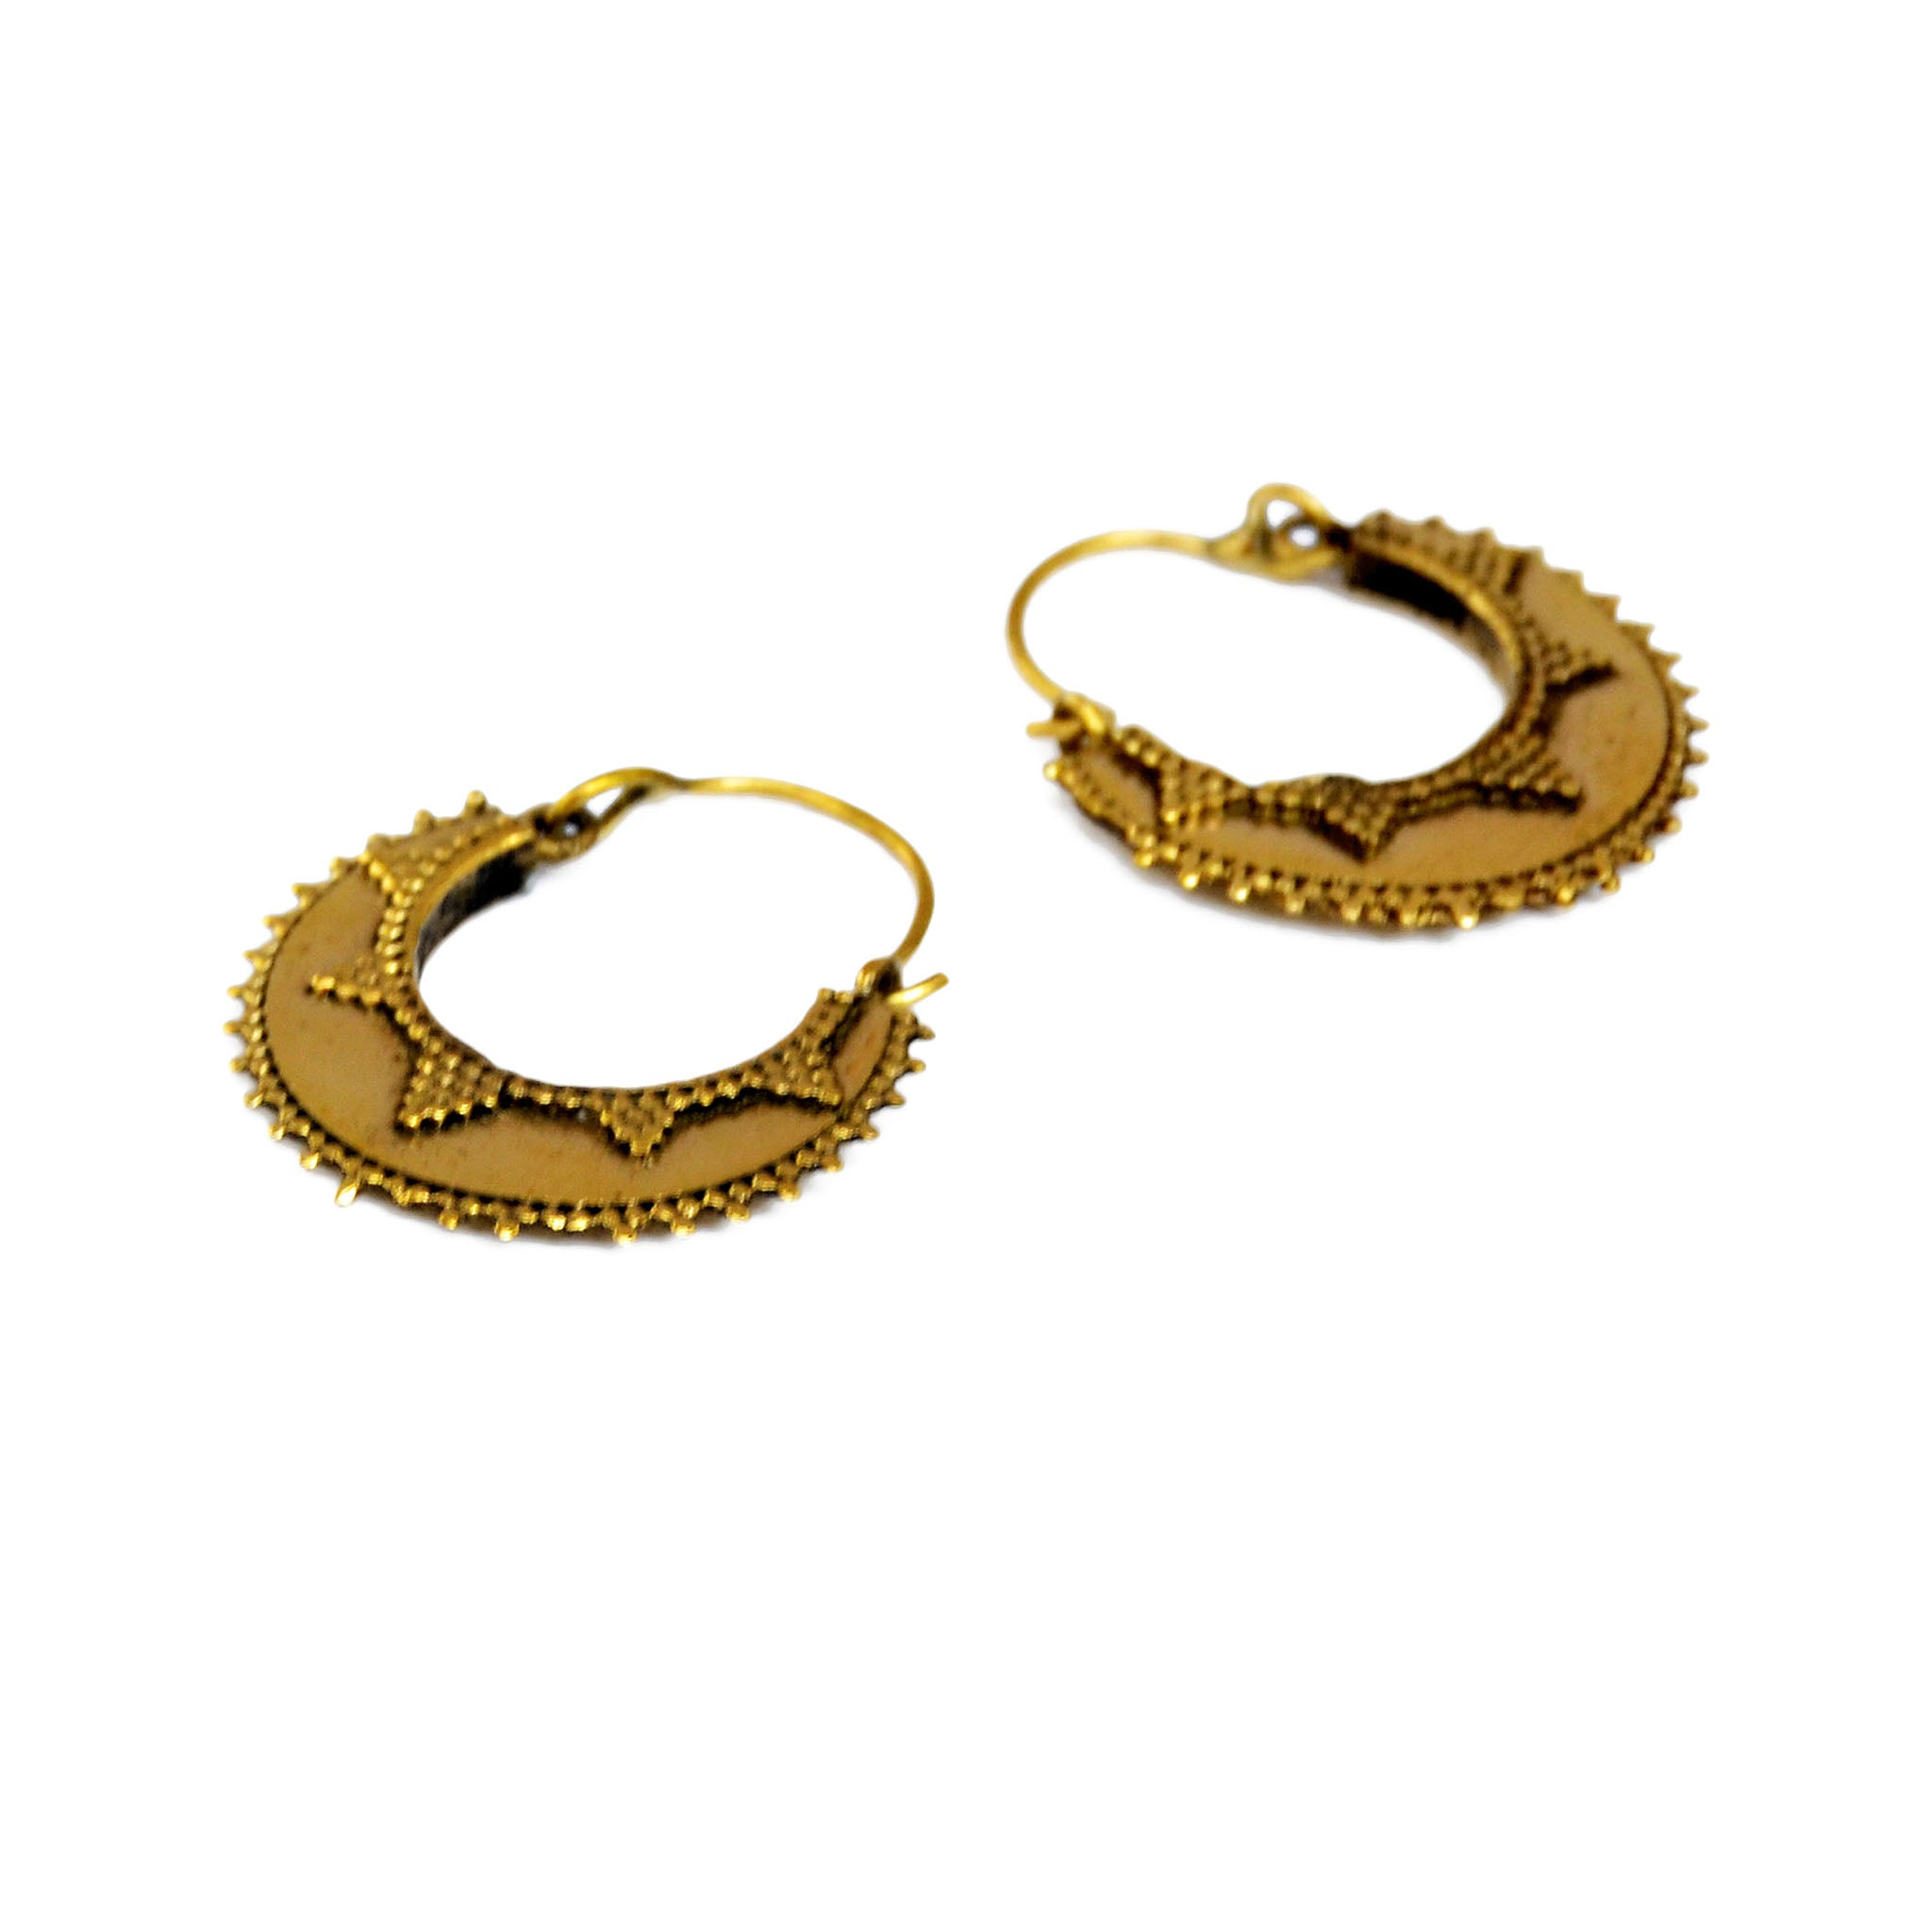 baali nickel rajasthani goods earrings chand handmade discovered fre dangle